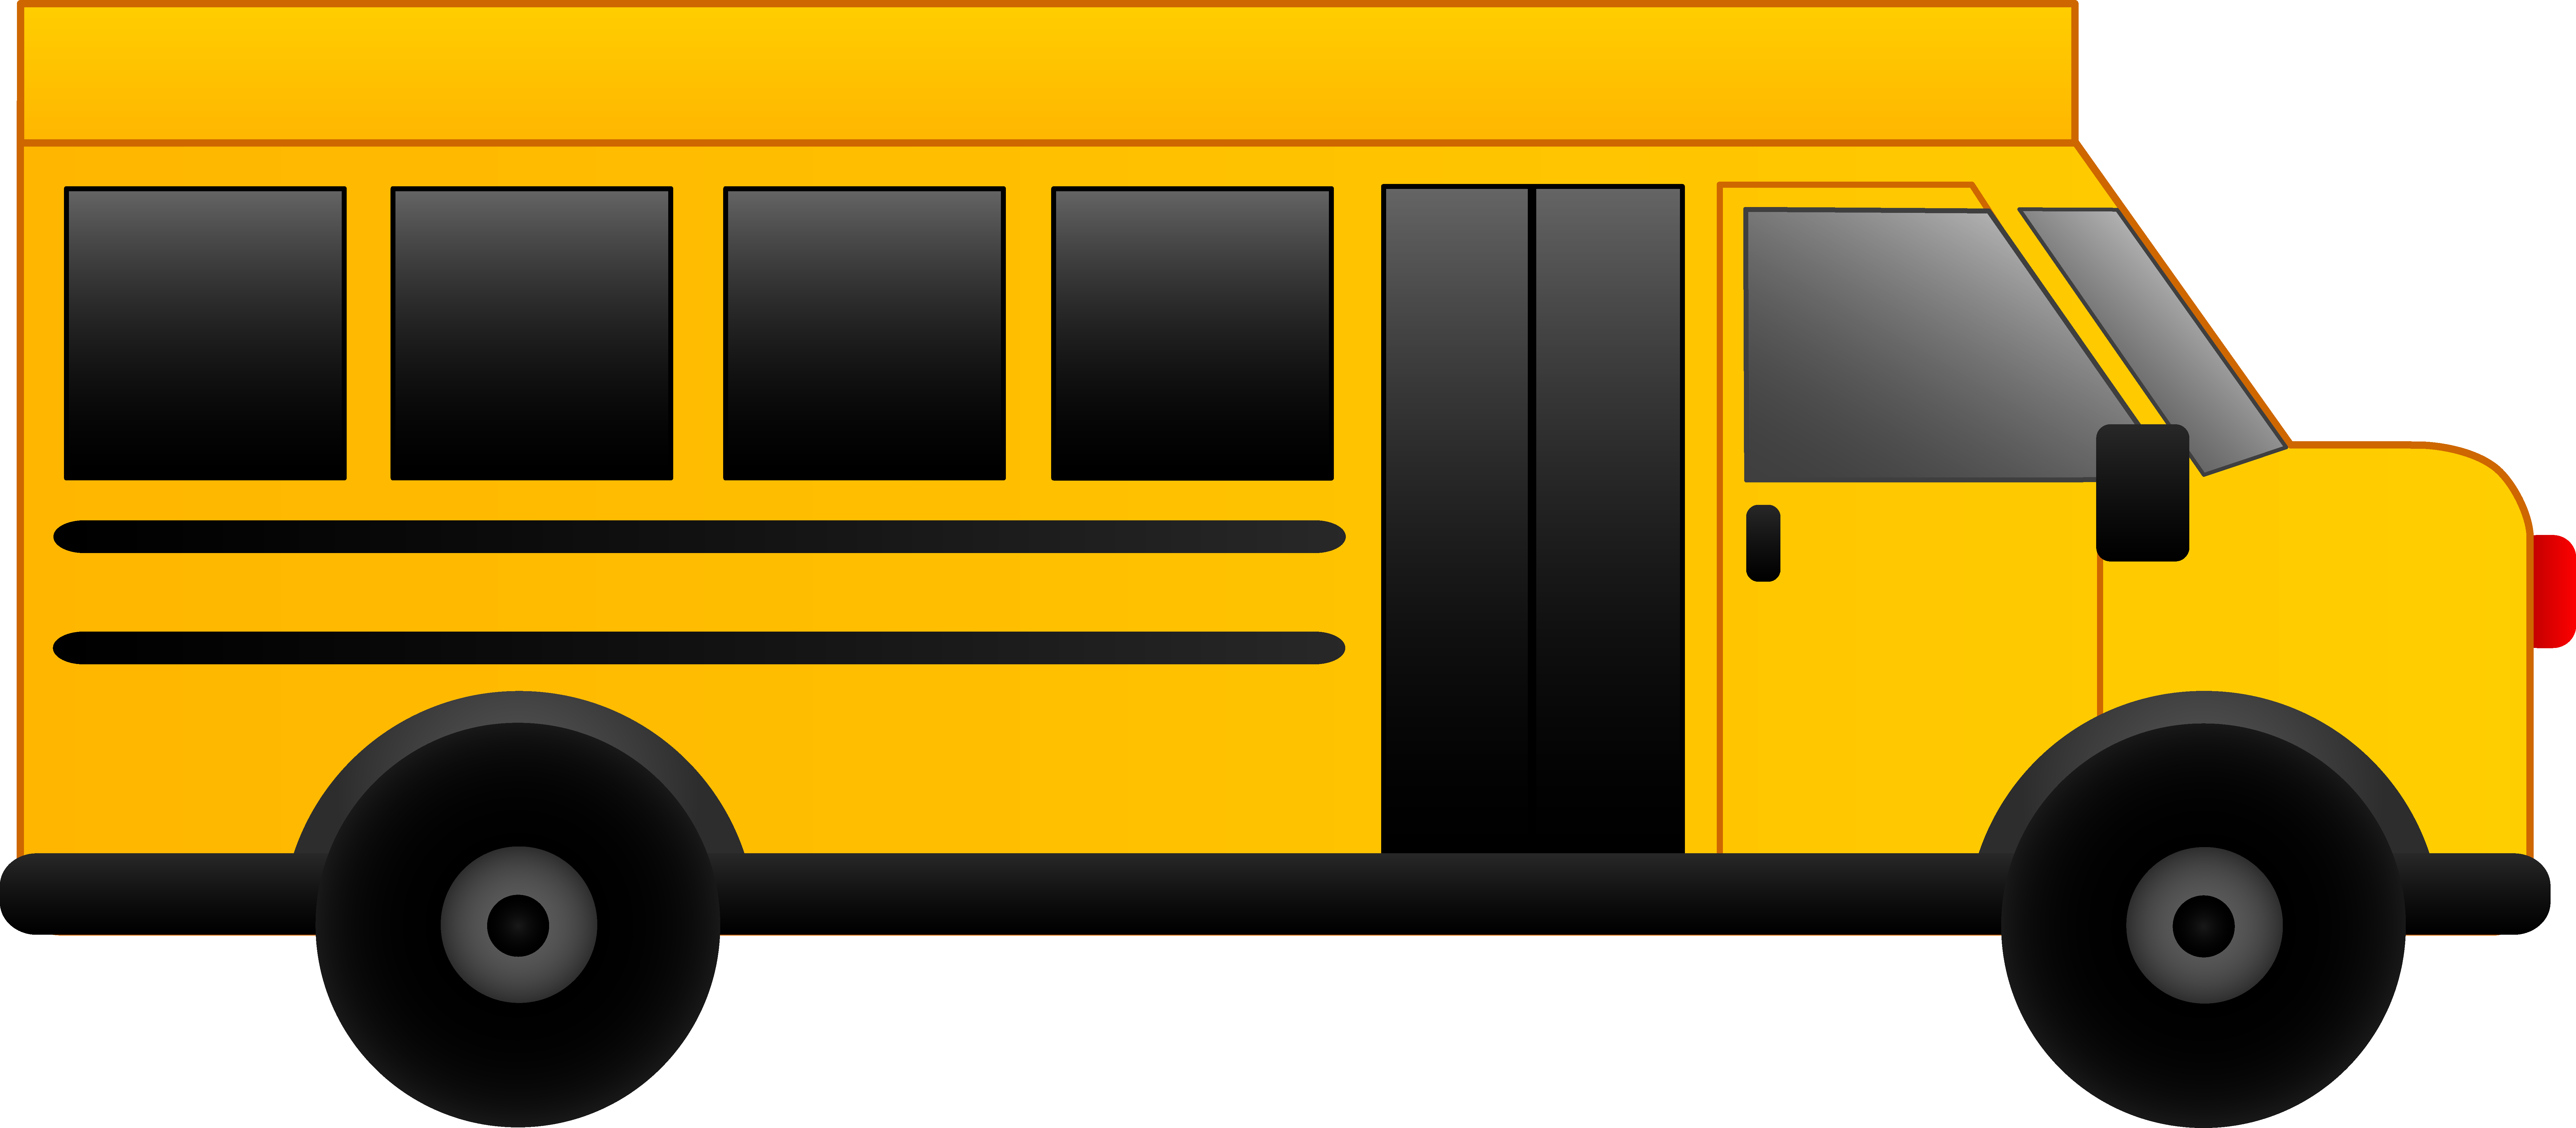 School bus clipart red lips clipart royalty free library Free Animated Bus Cliparts, Download Free Clip Art, Free ... clipart royalty free library